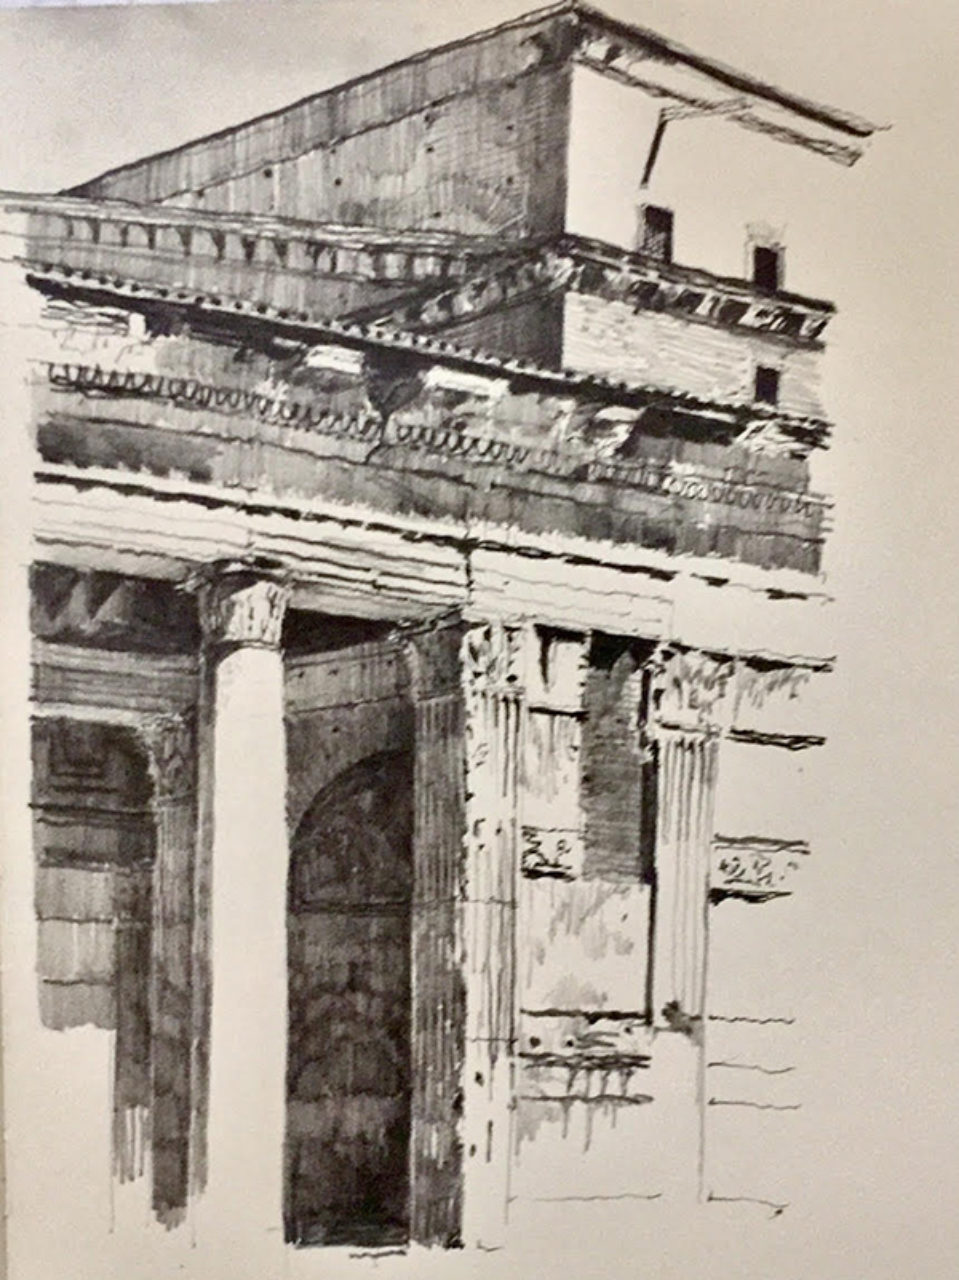 Tour participant Martin Burns' pantheon sketch